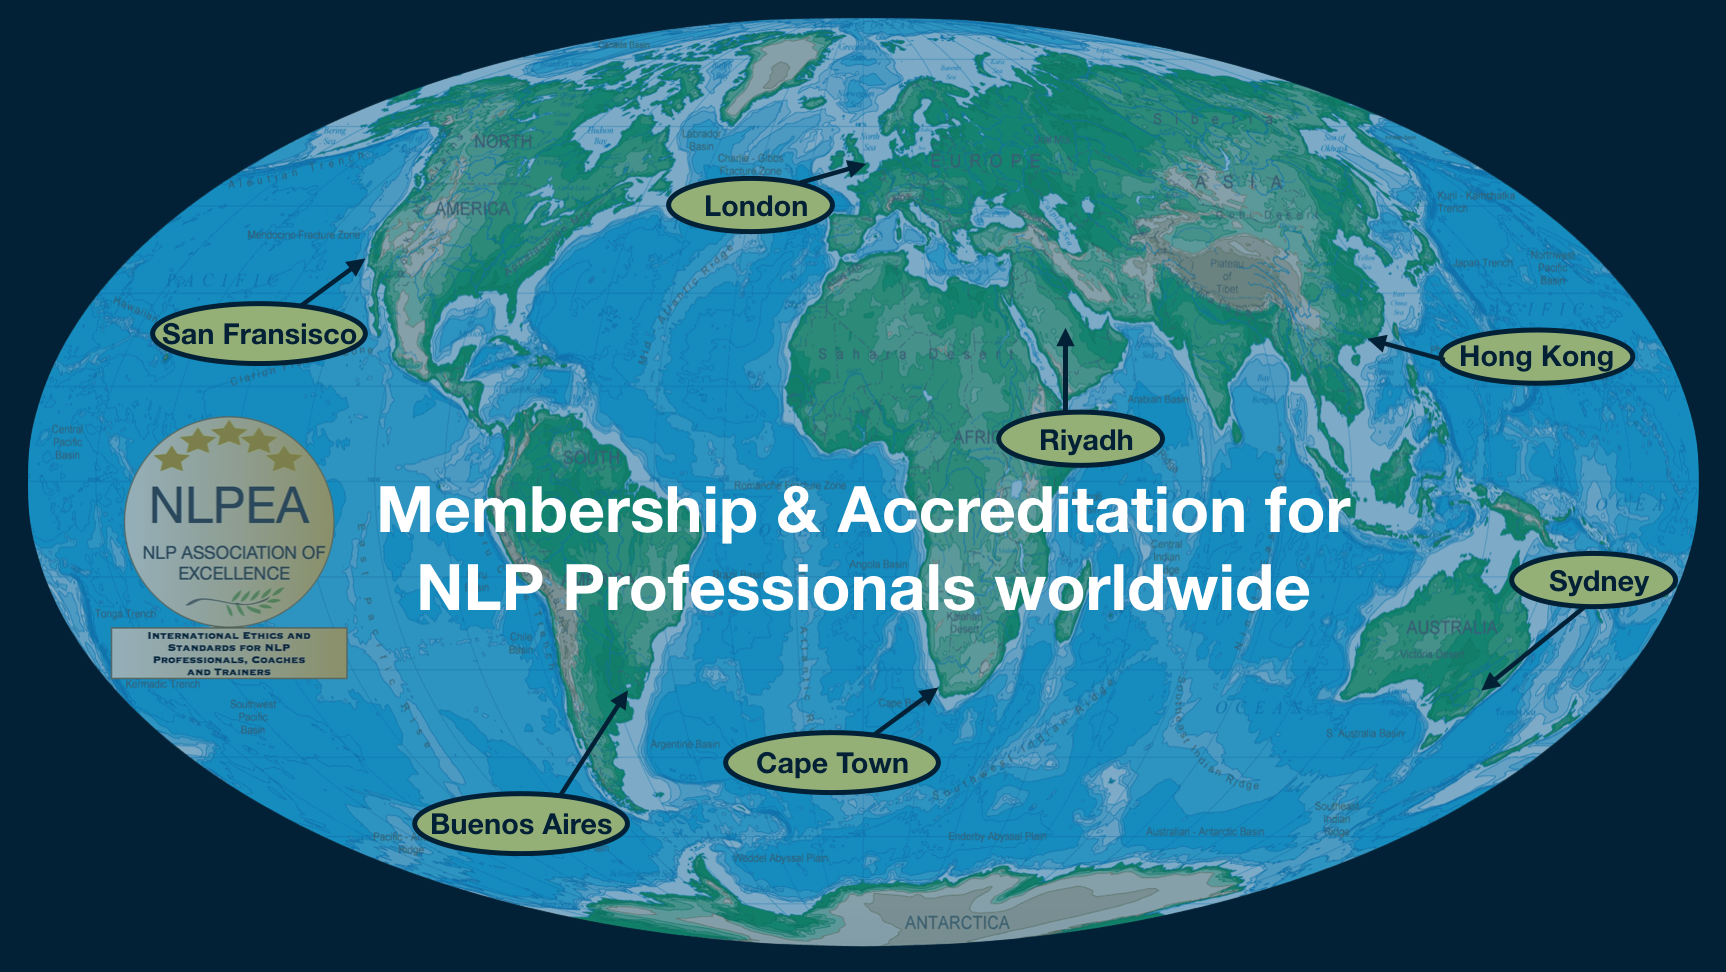 Membership & Accrediation for NLP Professionals worldwide